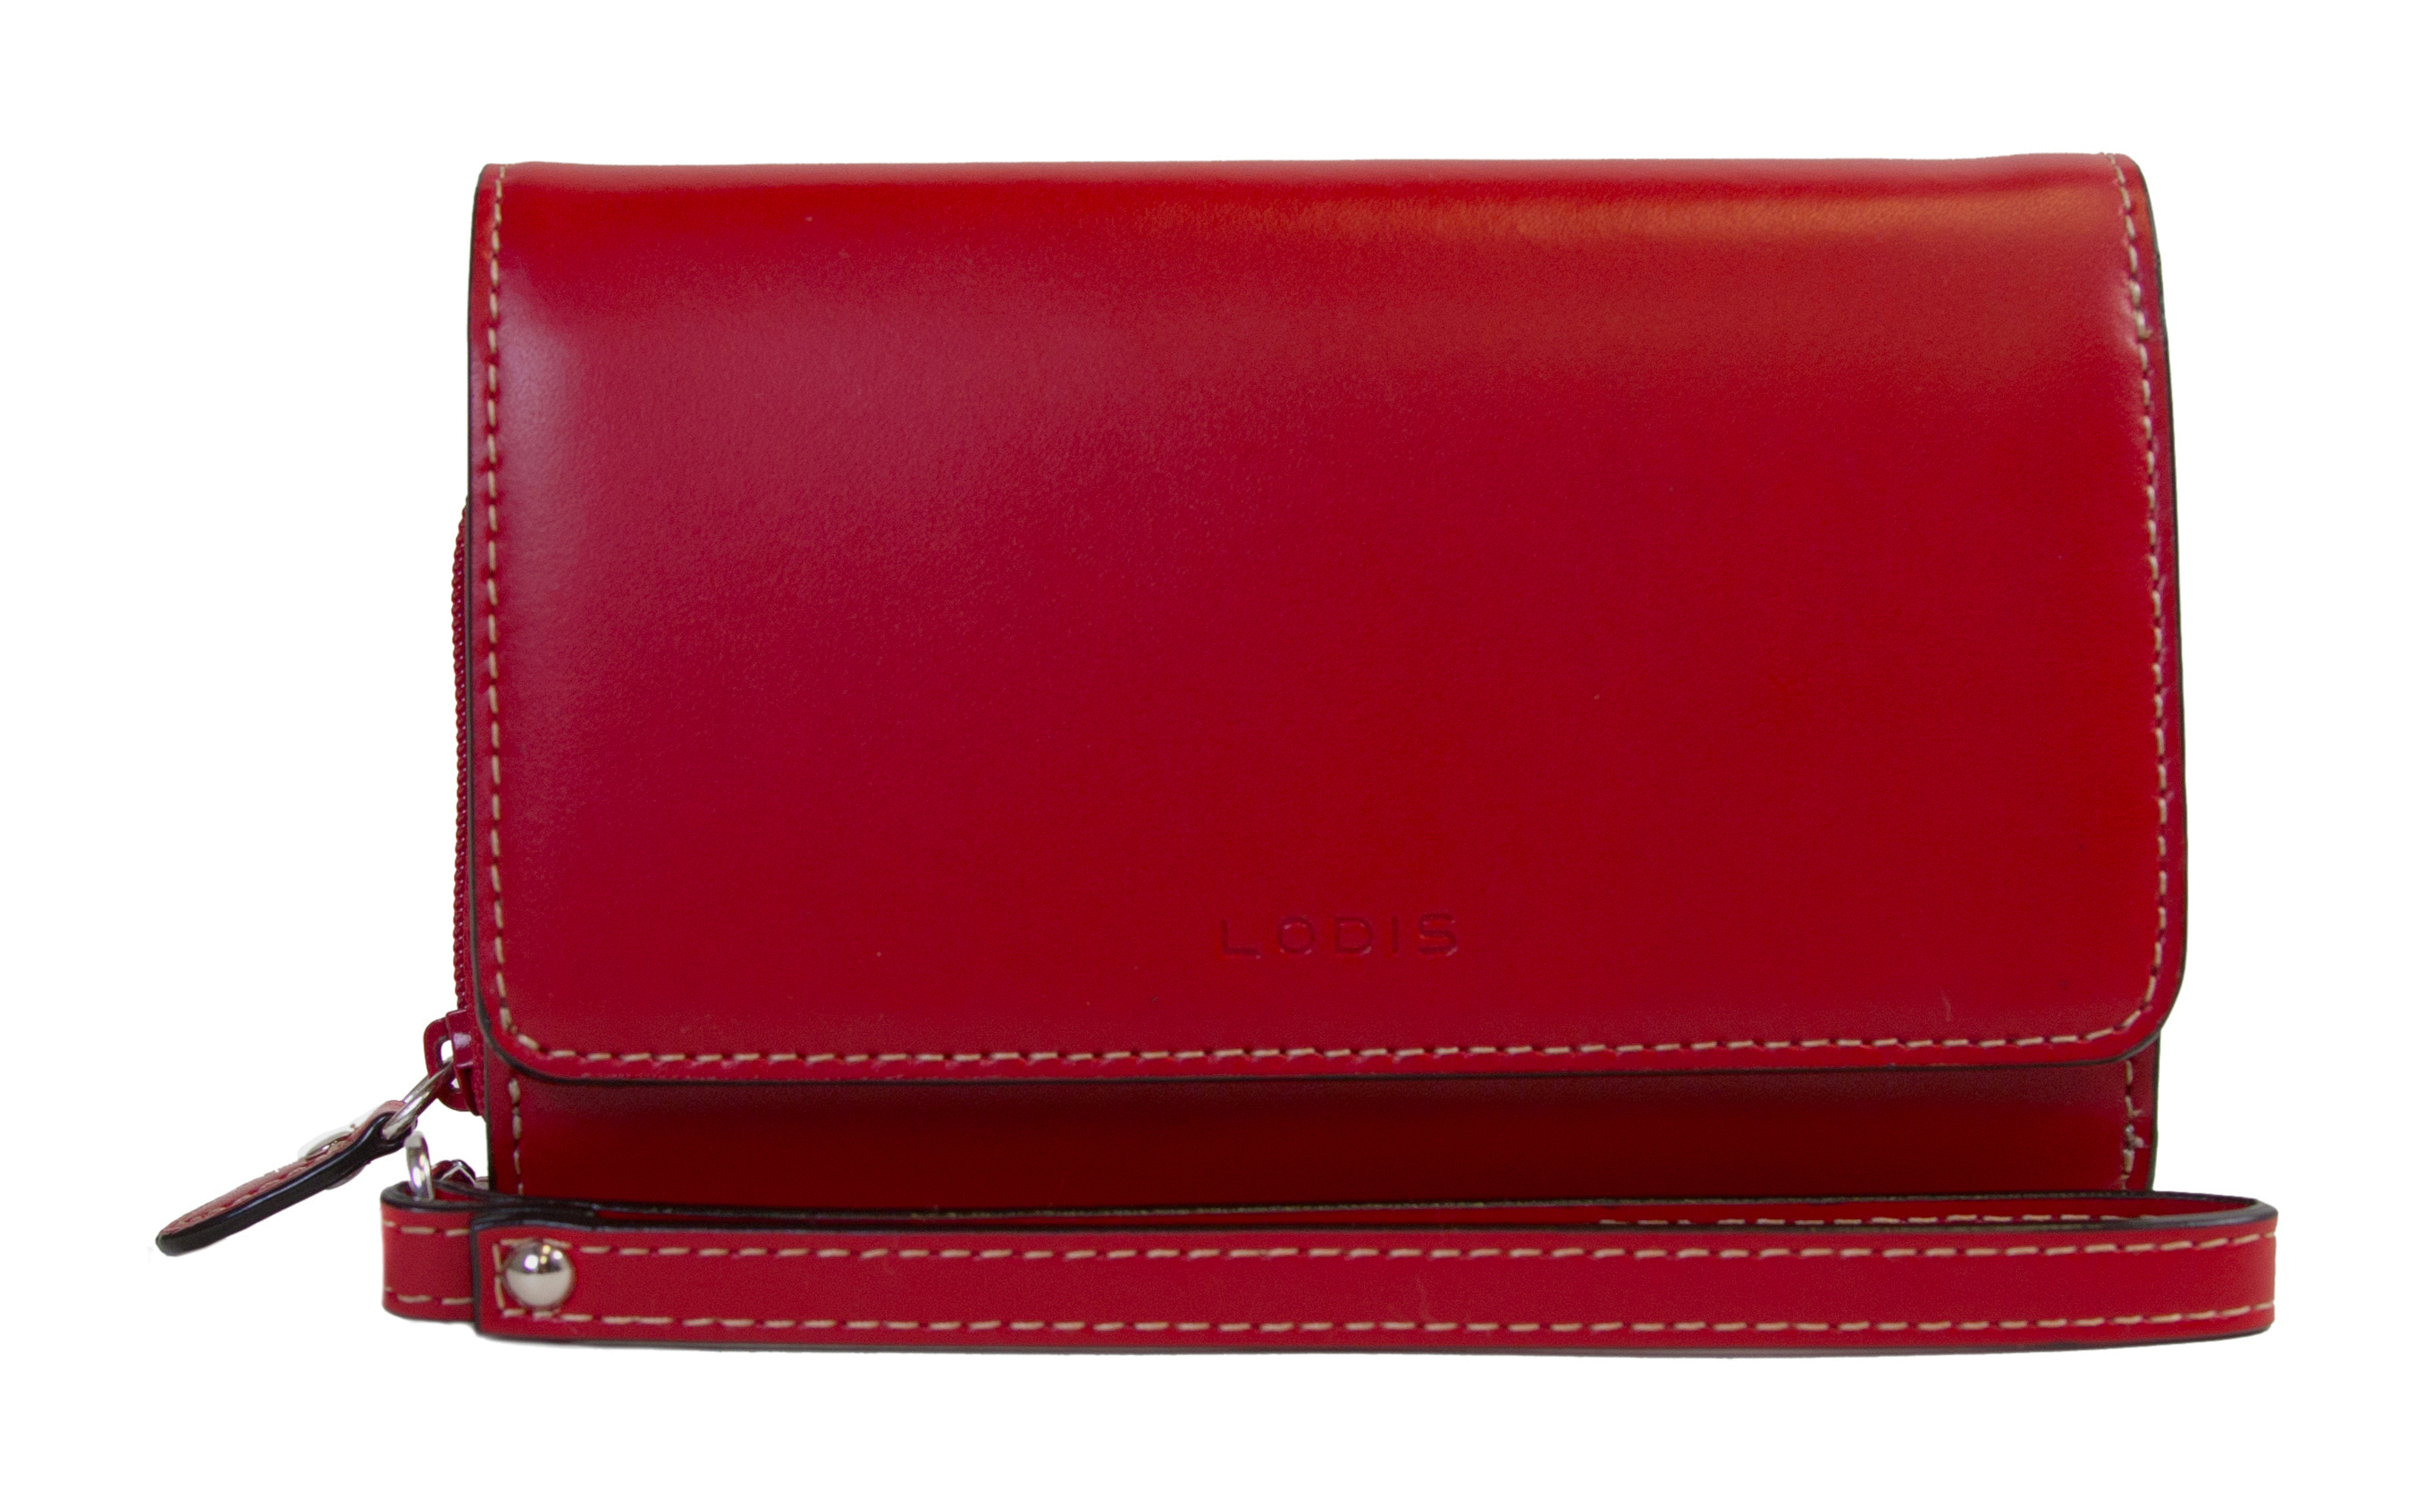 Lodis AUDREY BEA PHONE WALLET Red